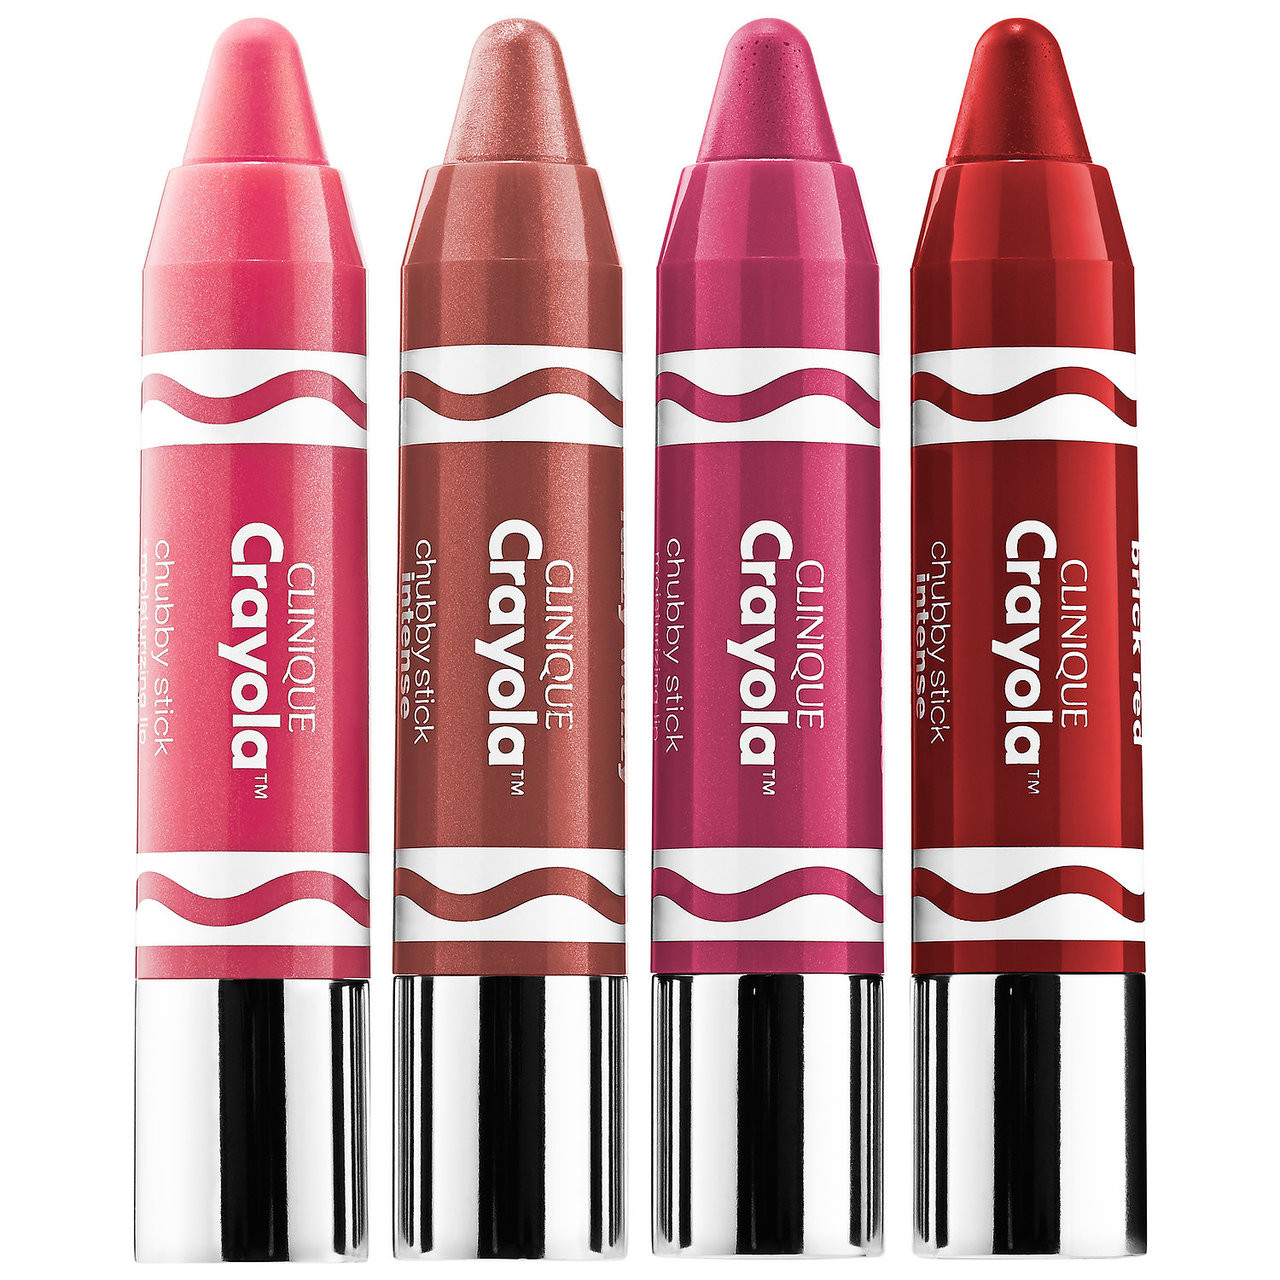 Clinique Crayola Crayon Box in 4 Brilliant Colors - Makeup Your Mind